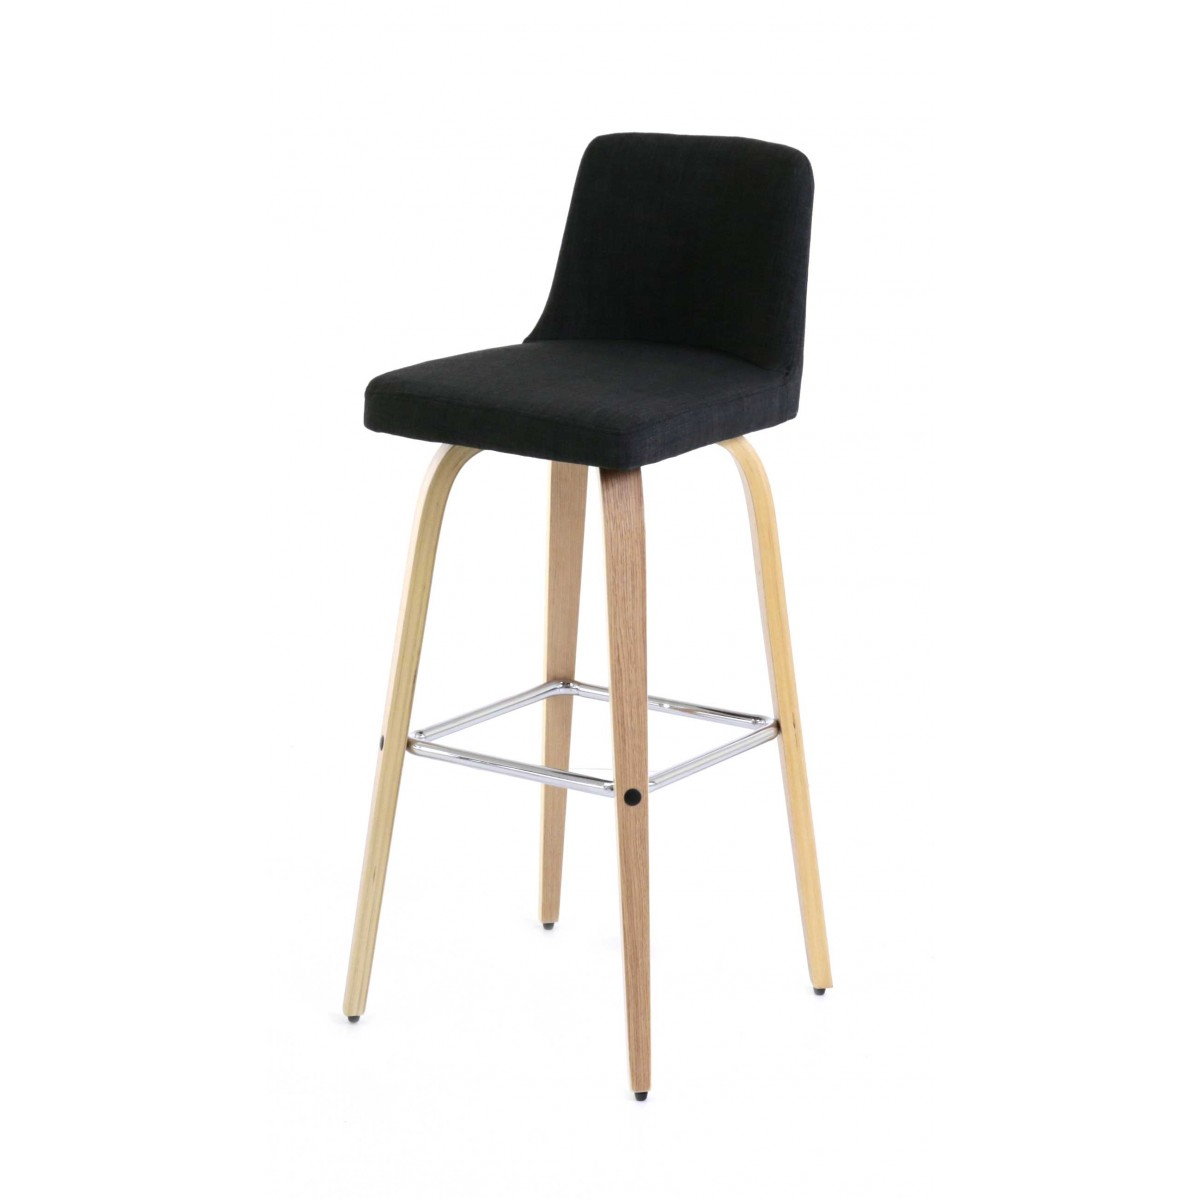 Songmics Lot De 2 Tabourets De Bar Stool Tabouret De Bar En Tissus Table De Lit